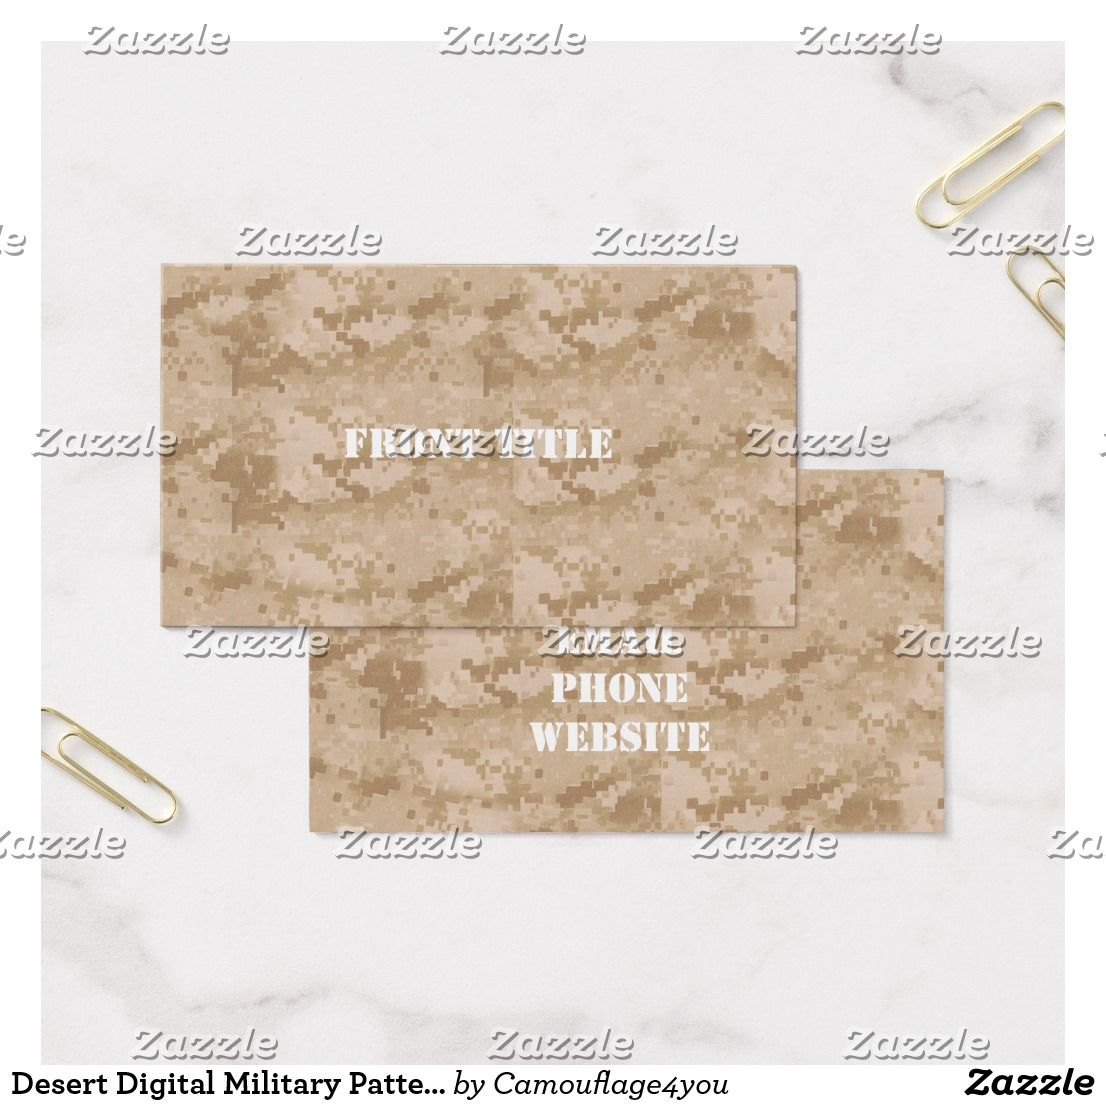 Desert digital military pattern business card by camouflage4you desert digital military pattern business card by personalize with a name initials rank military base id or text message colourmoves